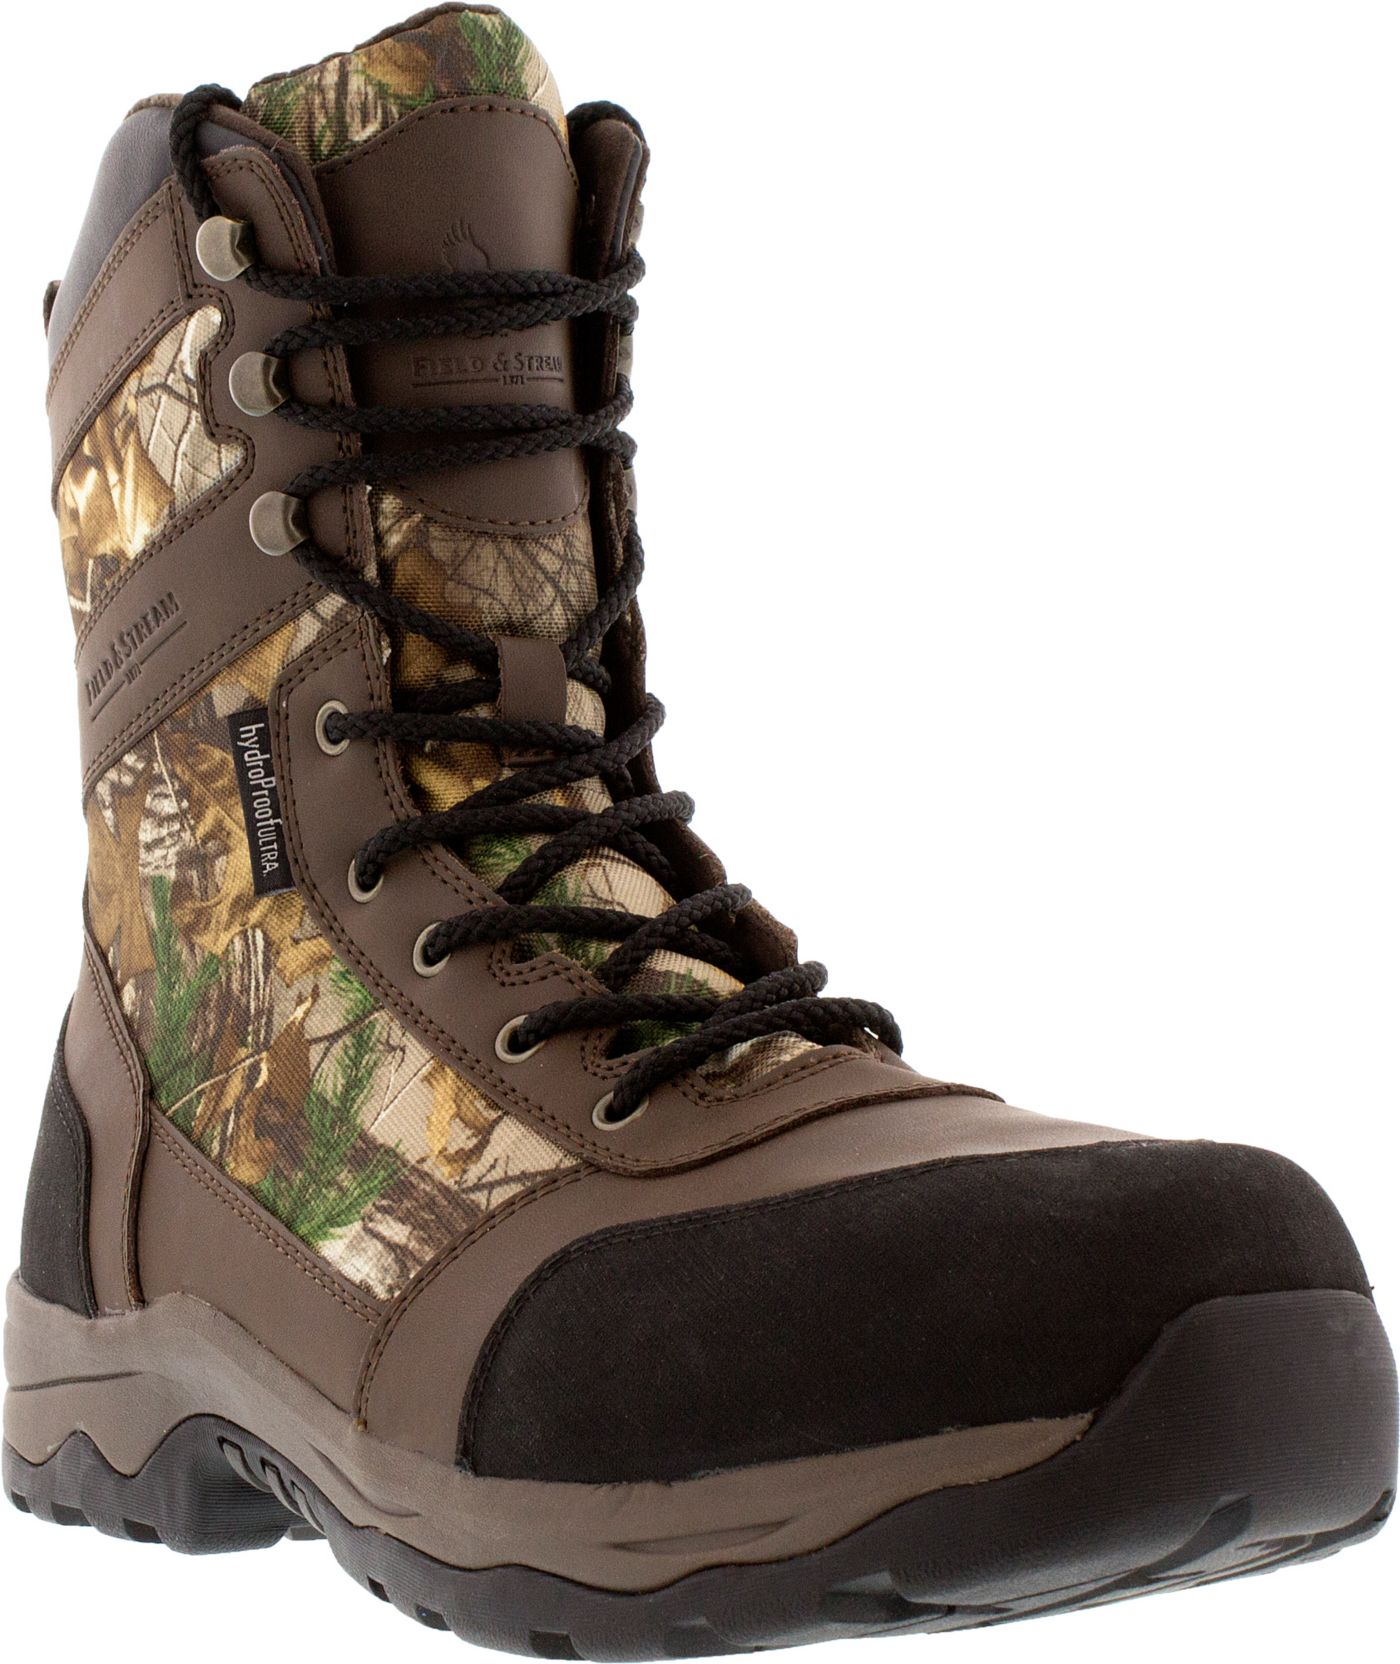 Field & Stream Men's Woodland Tracker Realtree Xtra 400g Waterproof Hunting Boots